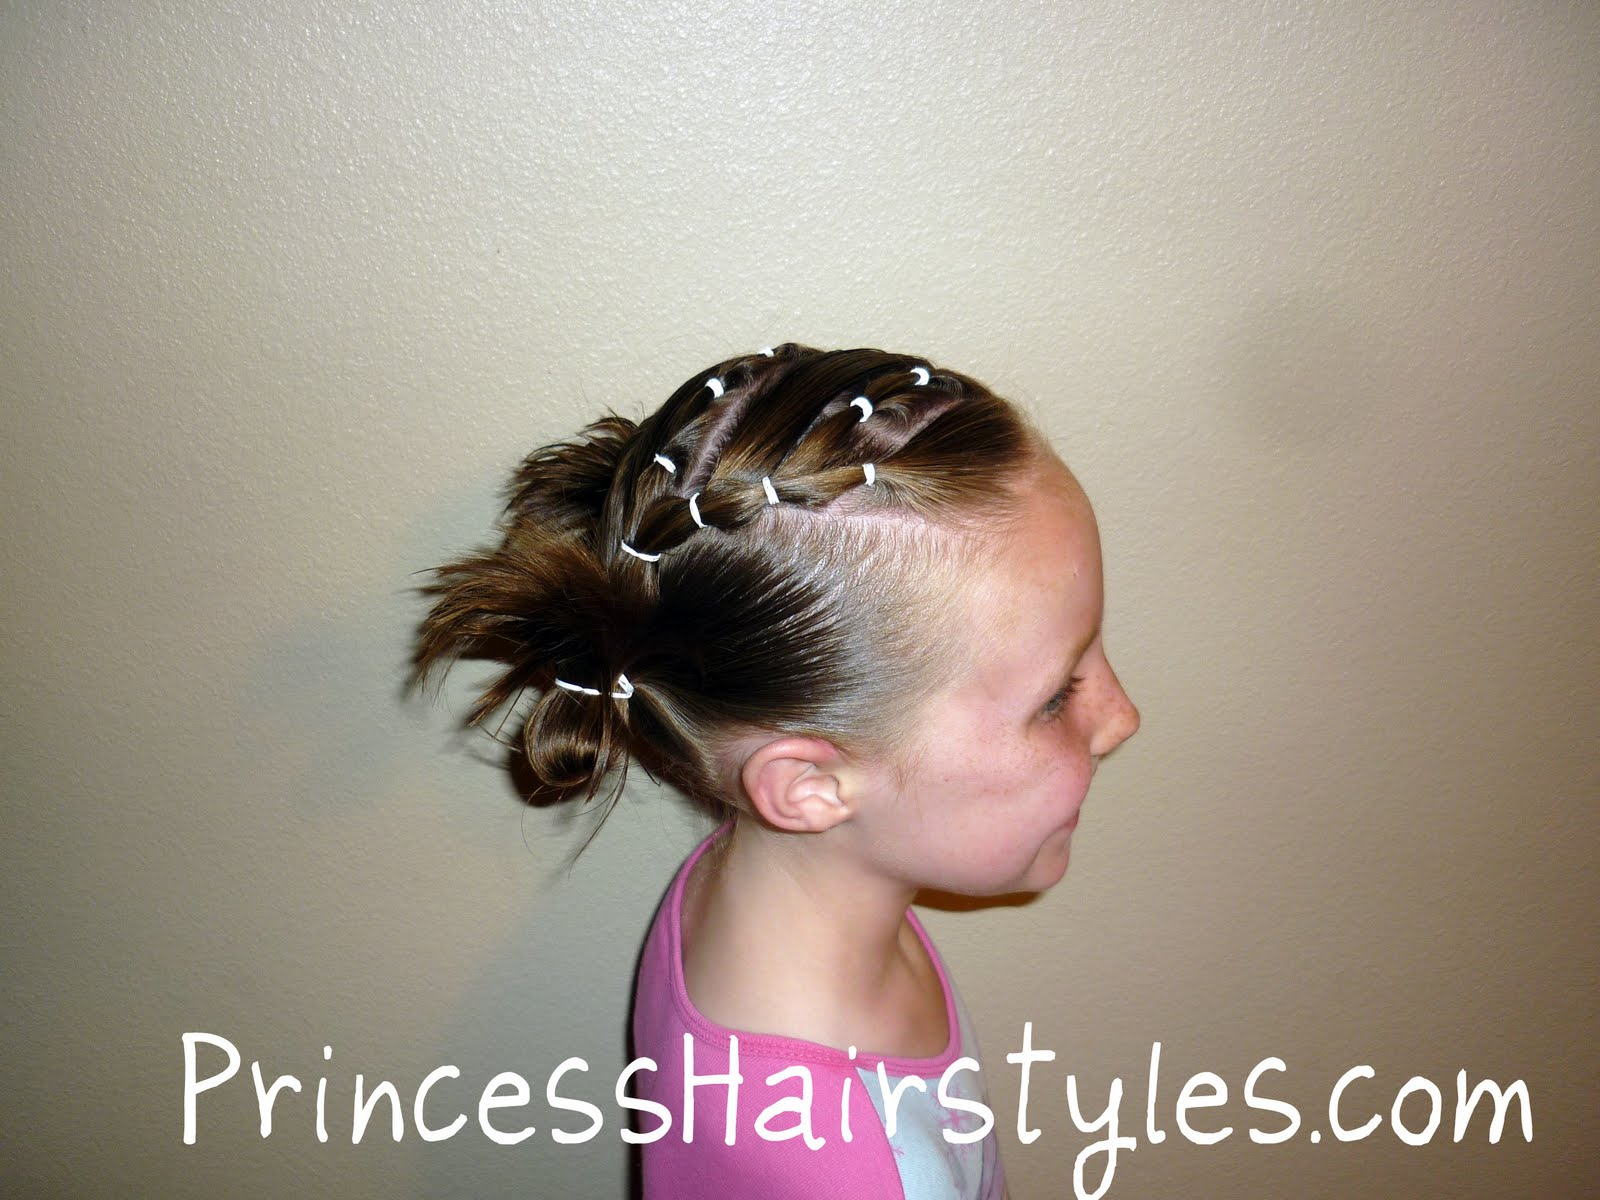 hairstyles for heart shaped face : Chutes and Ladders Hairdo Hairstyles For Girls - Princess Hairstyles